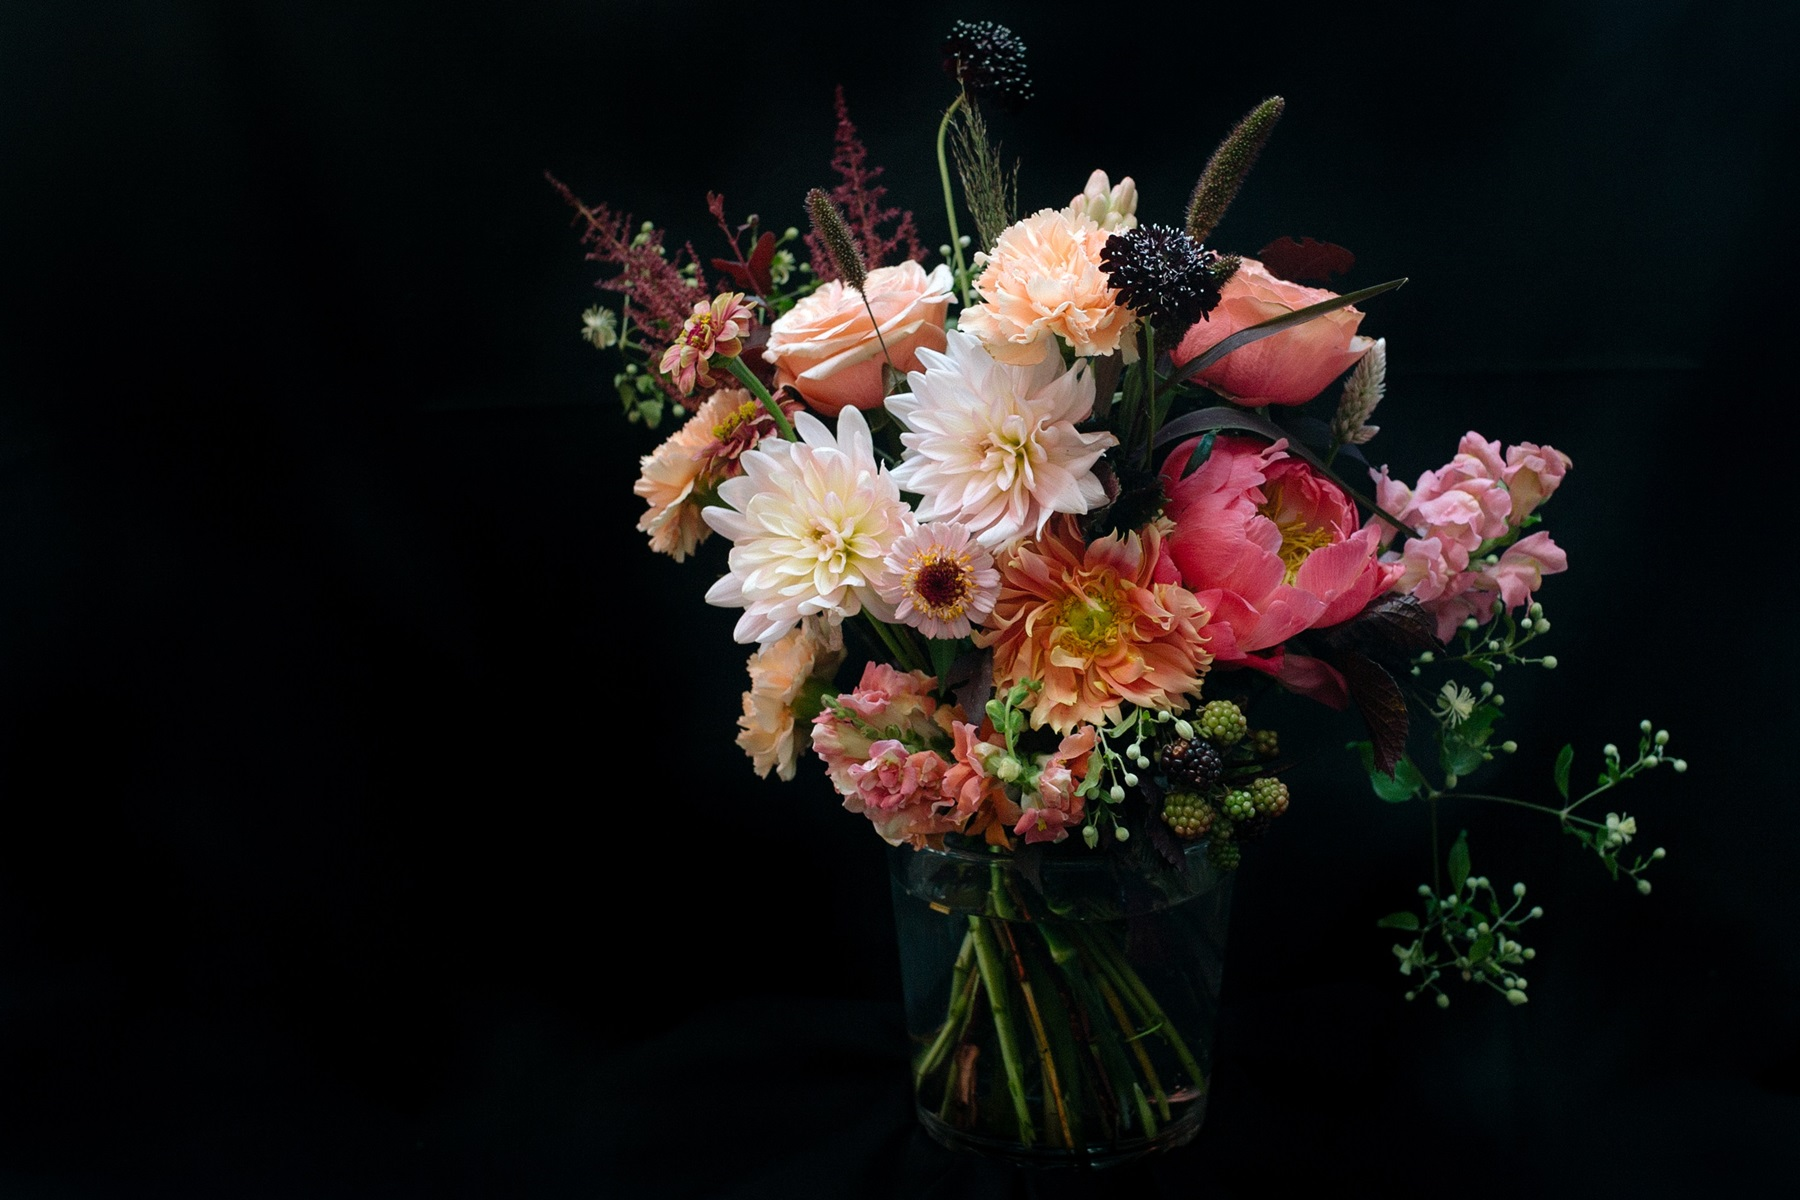 Lush bouquet in garden style with delicate roses, pink anthurium, dahlias and seasonal berries